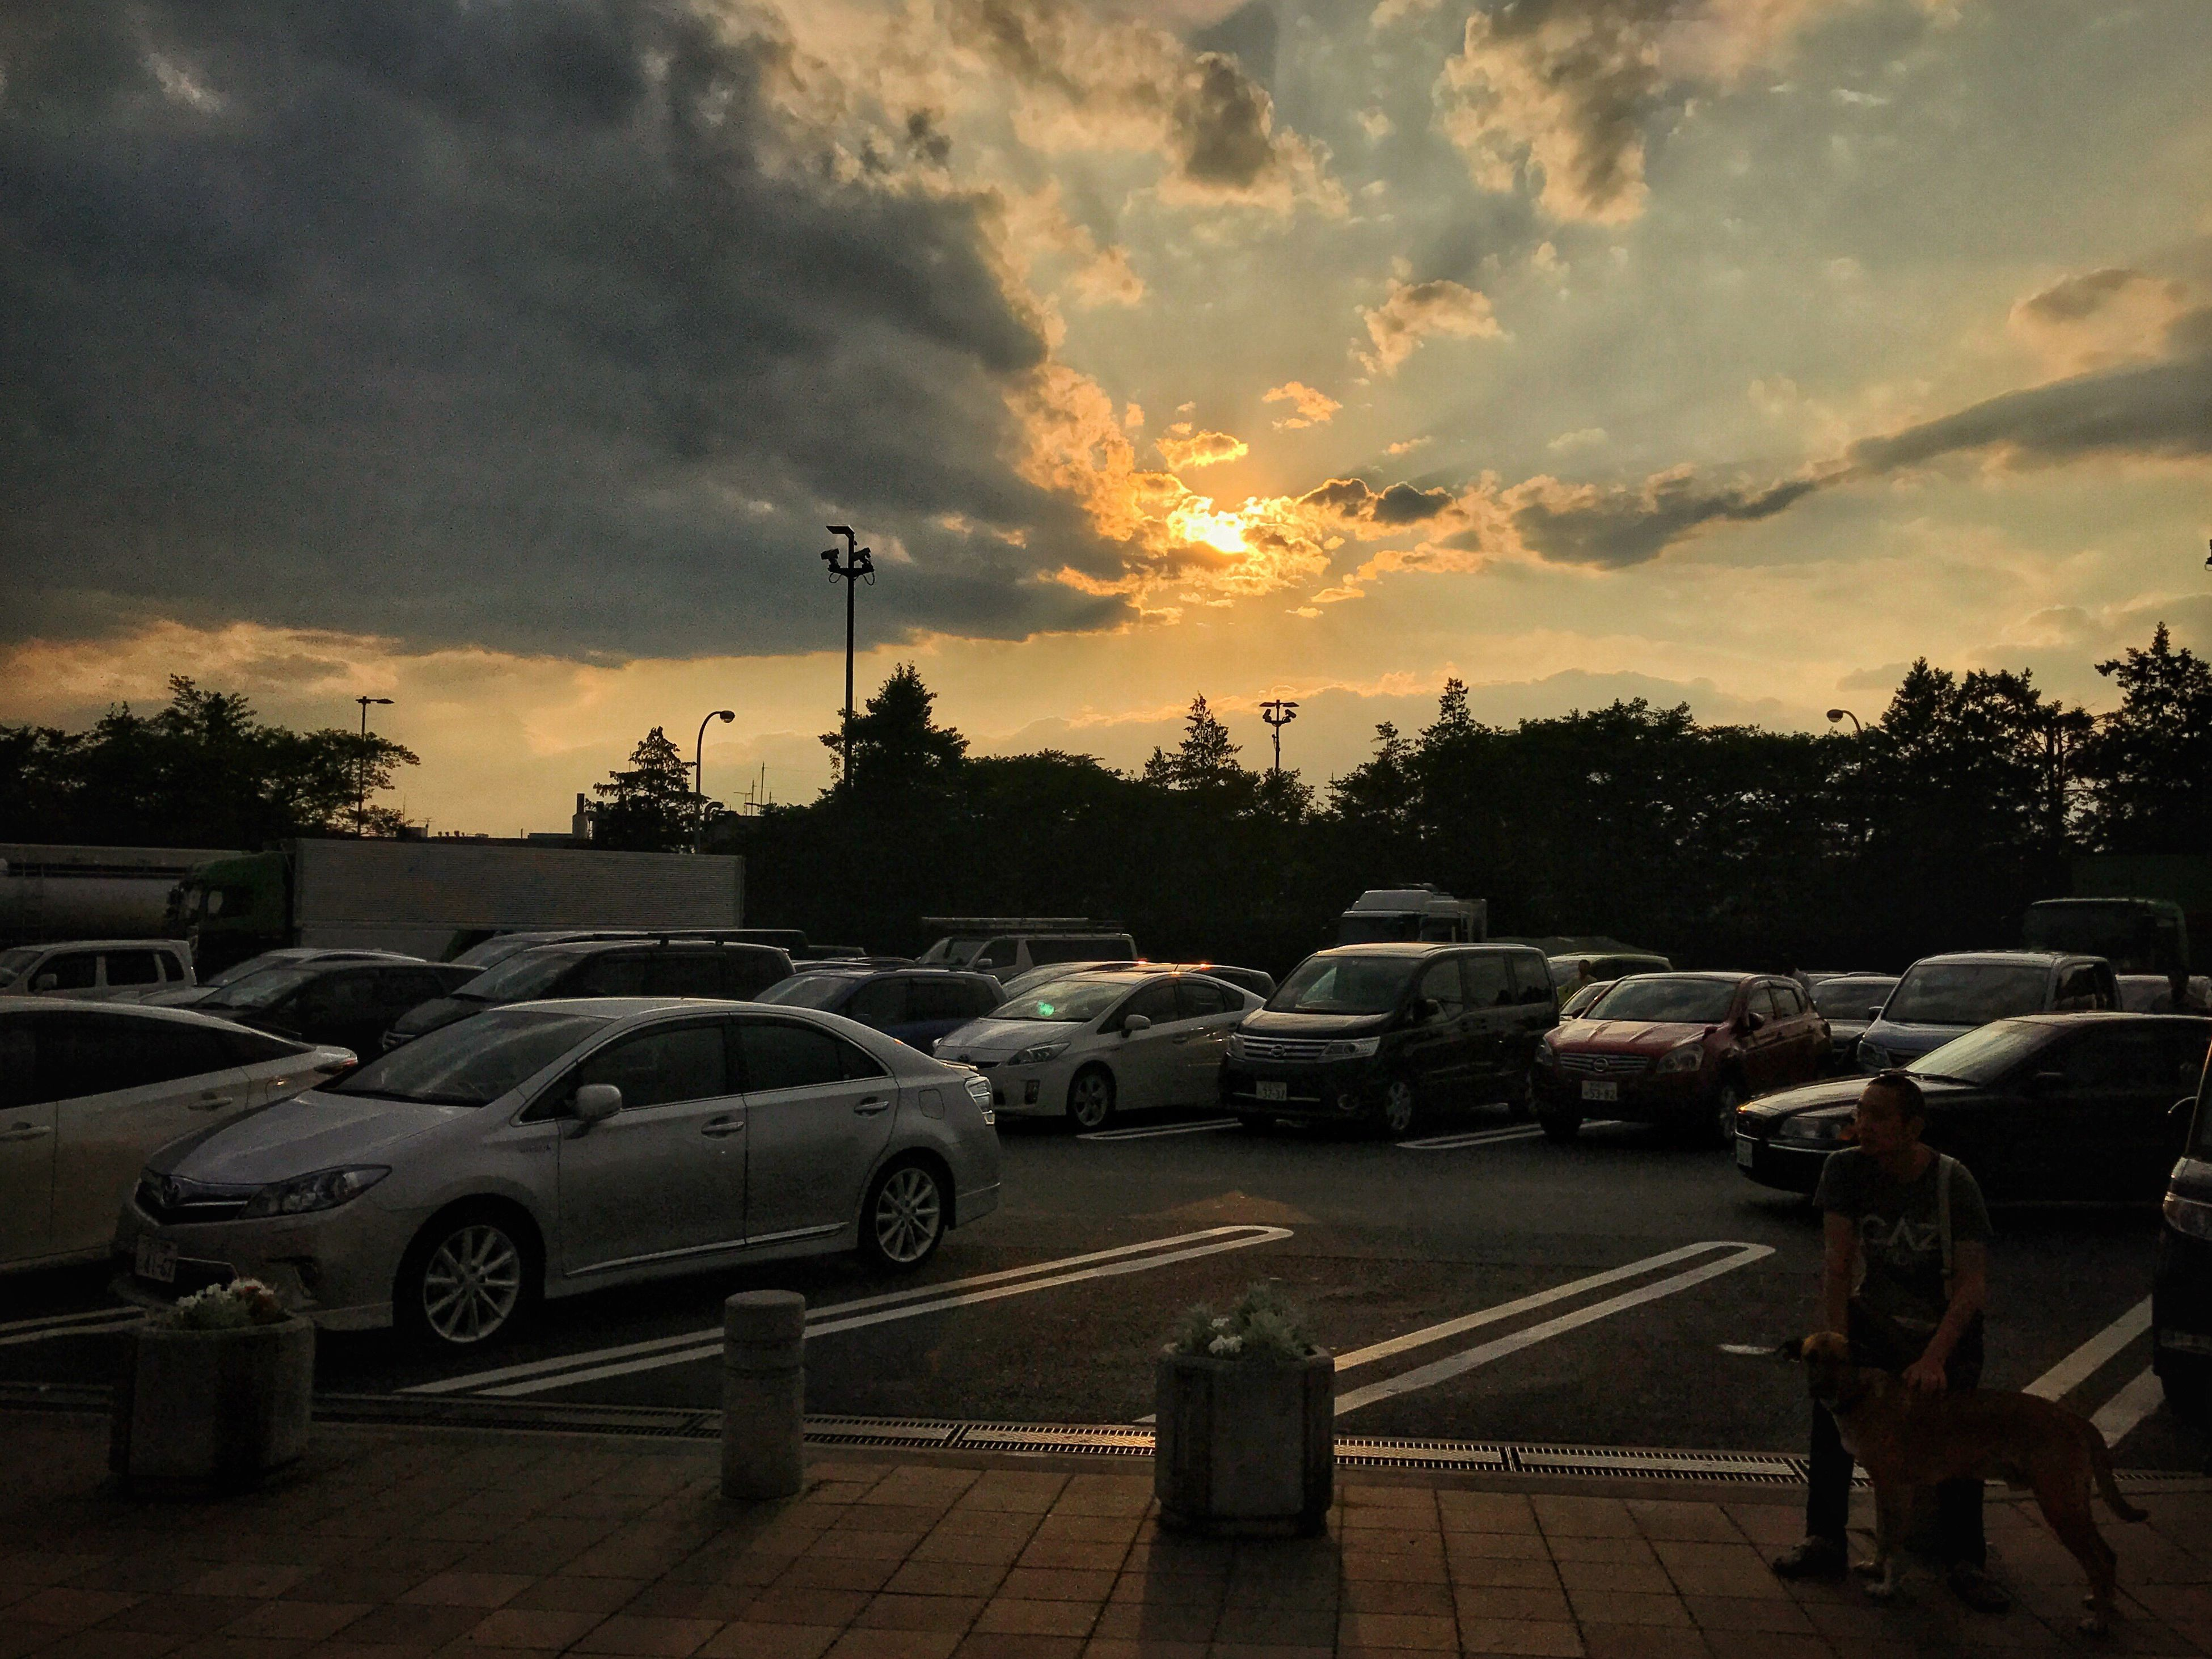 Sunset/夕焼け Sunset Car Sky Cloud - Sky Transportation Land Vehicle Tree Outdoors No People City Day IPhoneography